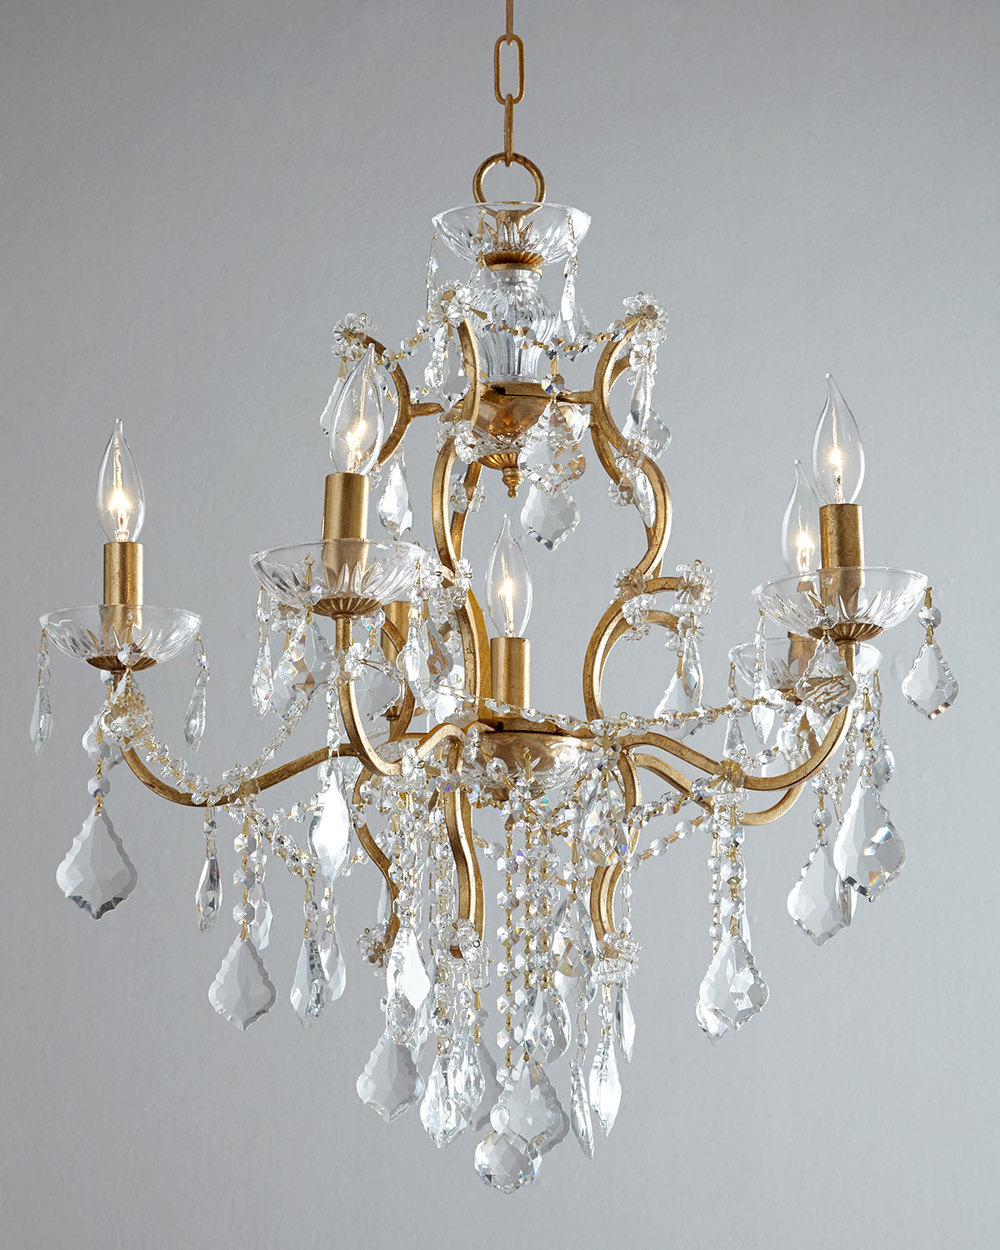 Great Now try not to feign mock surprise when I tell you a chandelier is what you need to plete the look Save your acting skills and rush over to grab this